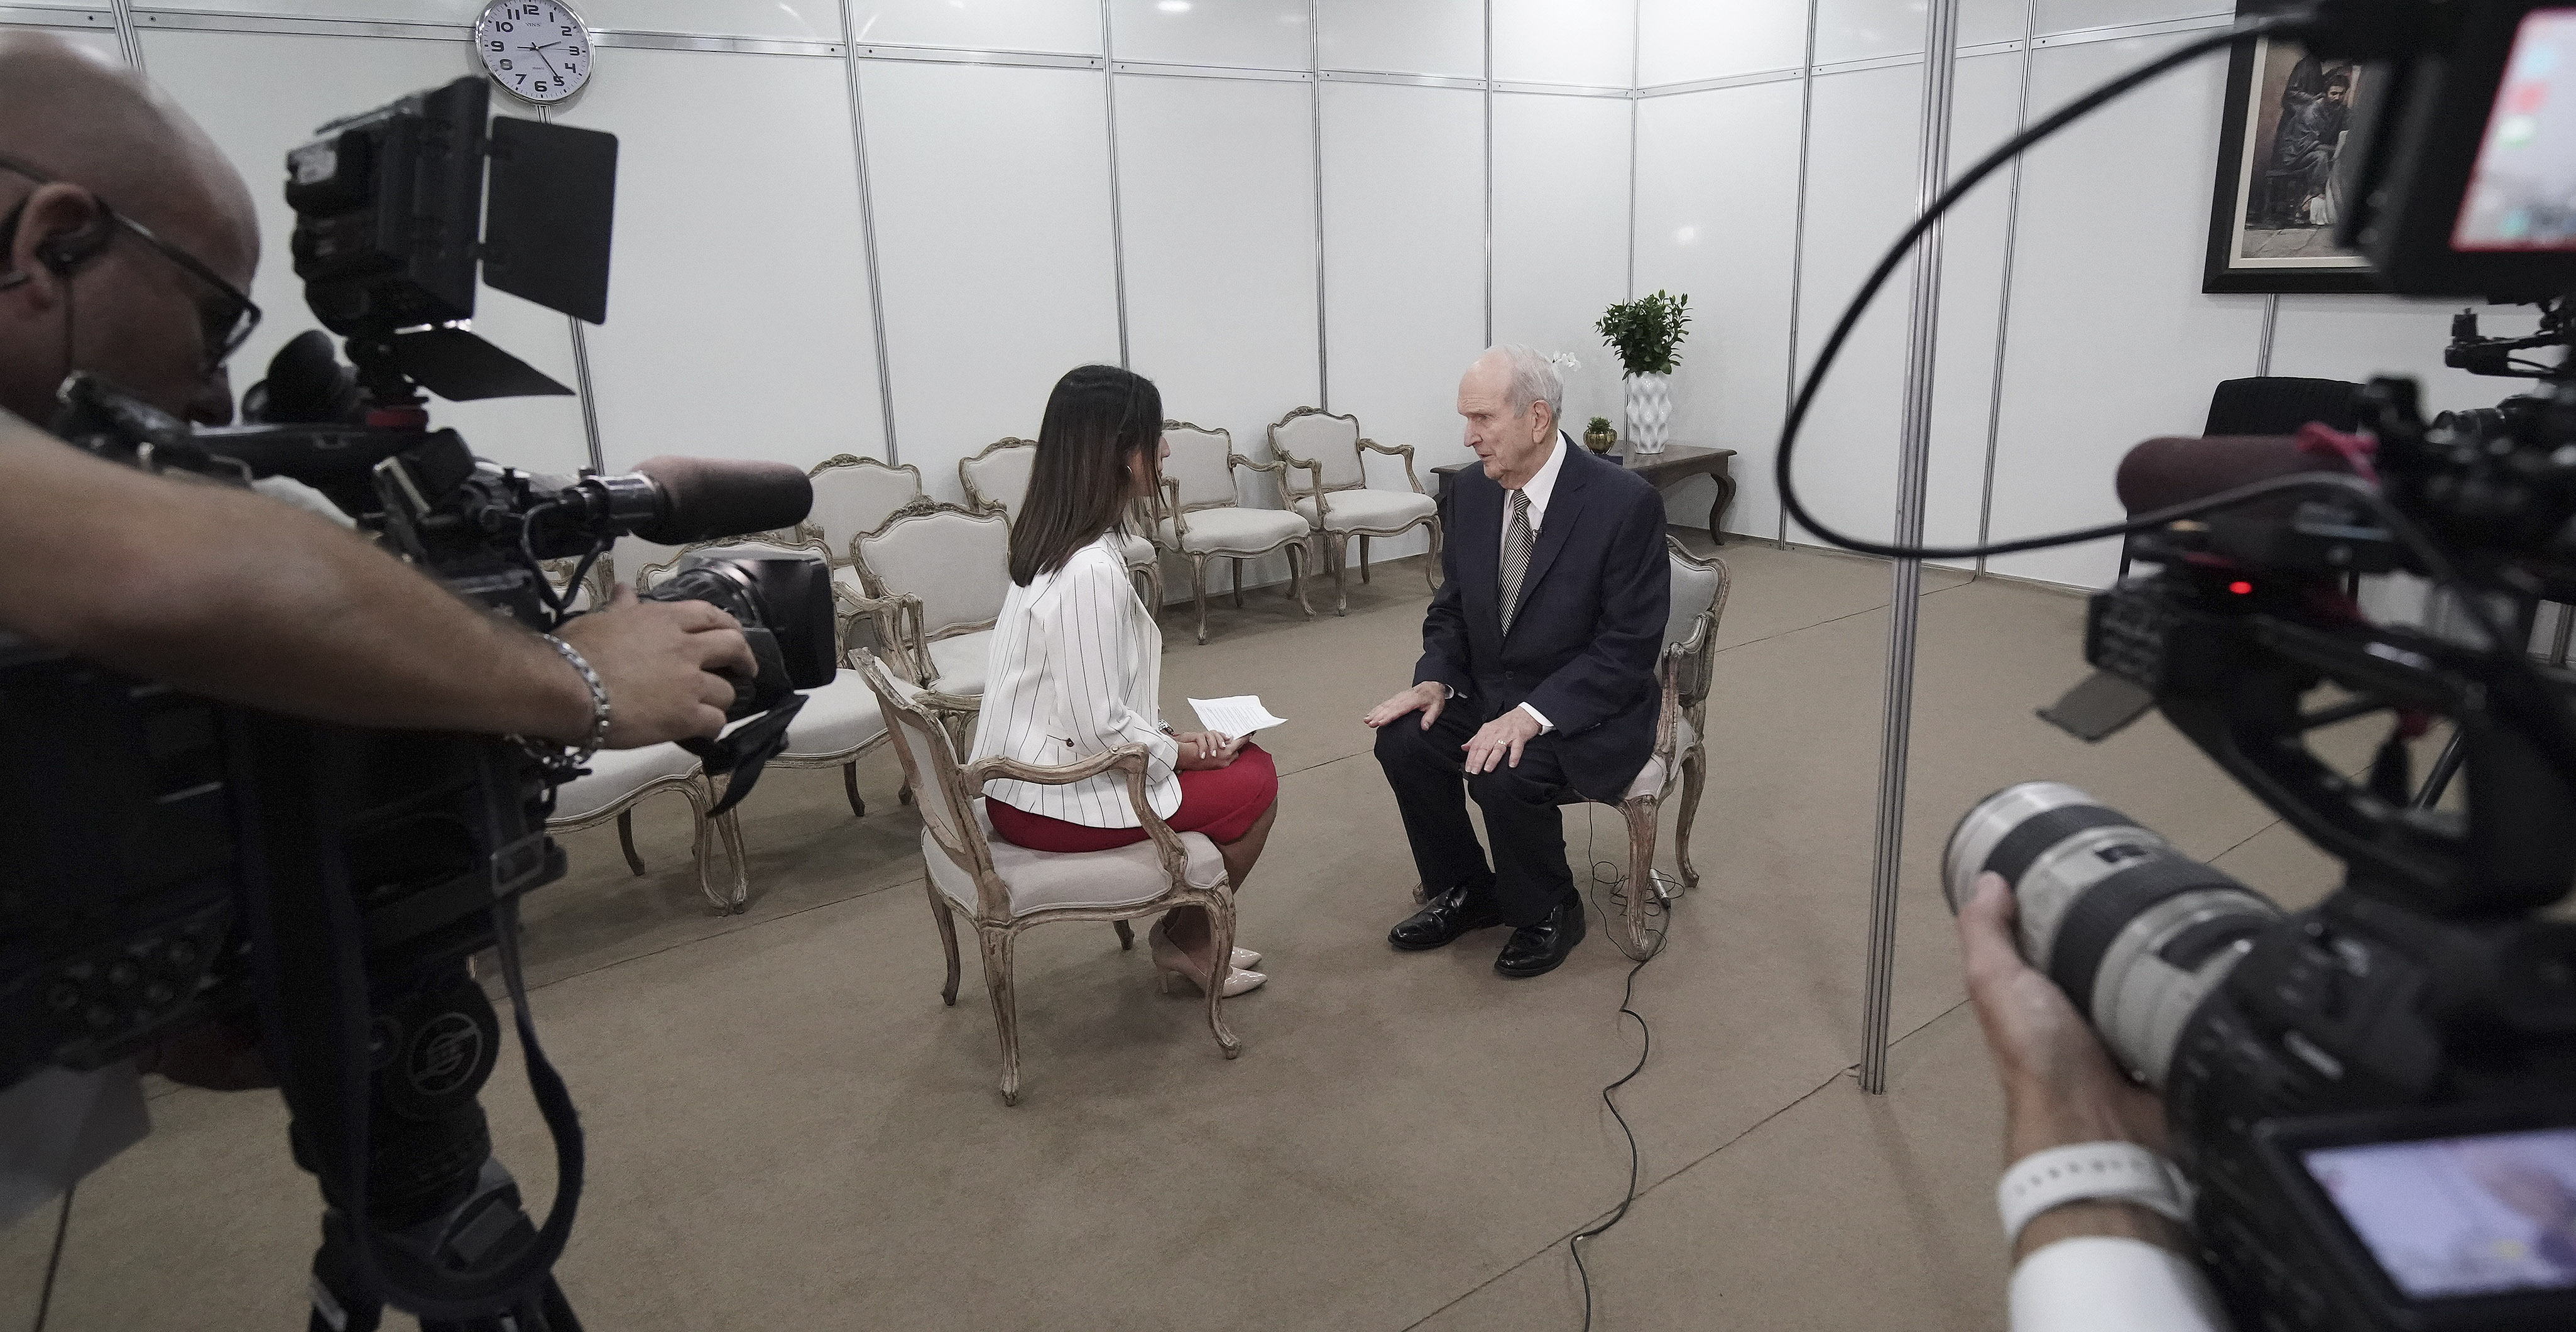 TV journalist Isabela Tacaki interviews President Russell M. Nelson of The Church of Jesus Christ of Latter-day Saints prior to a devotional in Sao Paulo, Brazil, on Sunday, Sept. 1, 2019.